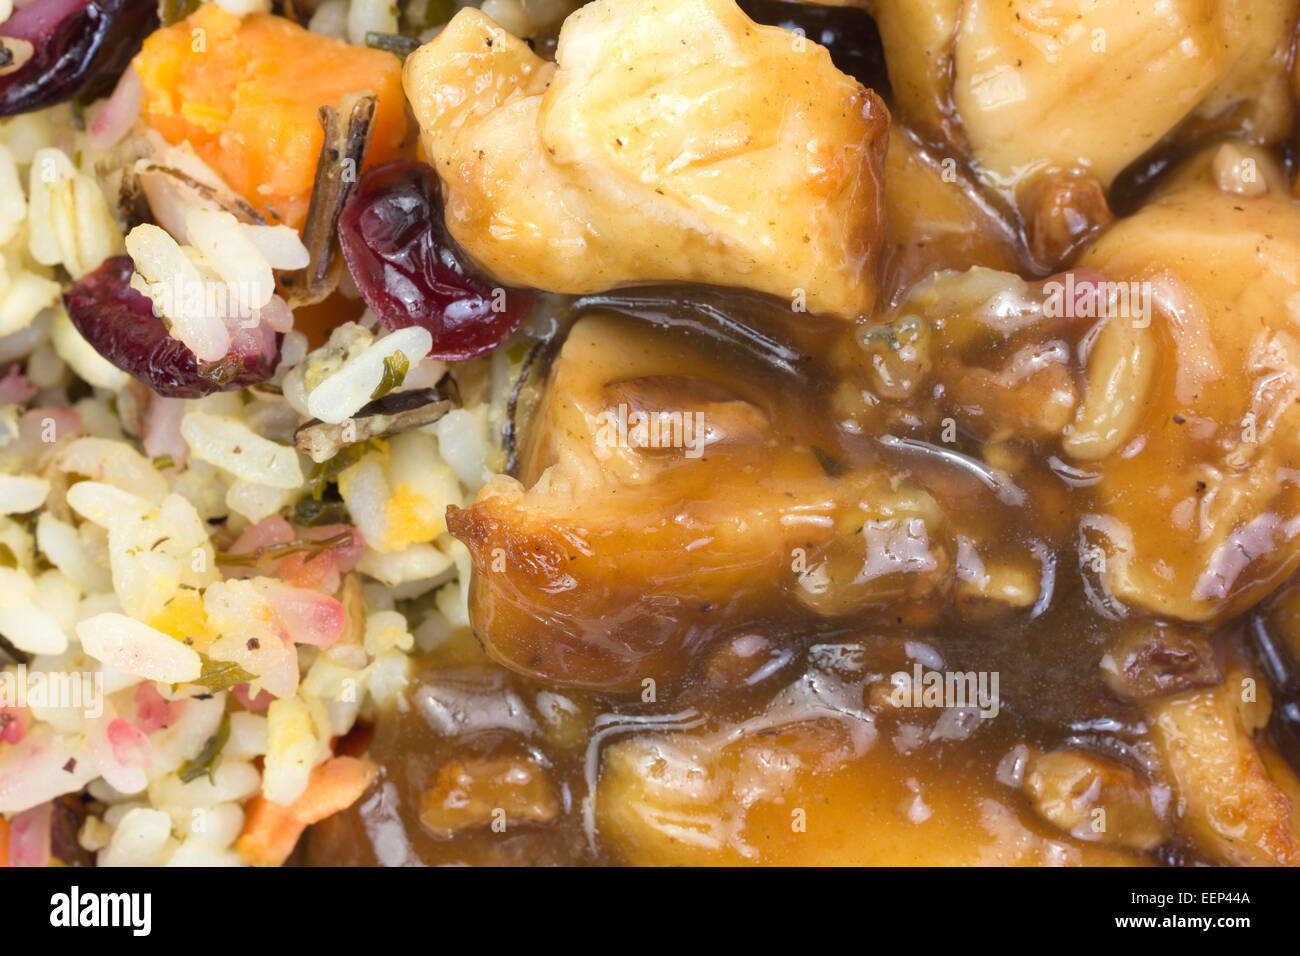 A very close view of chicken in a pecan sauce with rice TV dinner. - Stock Image